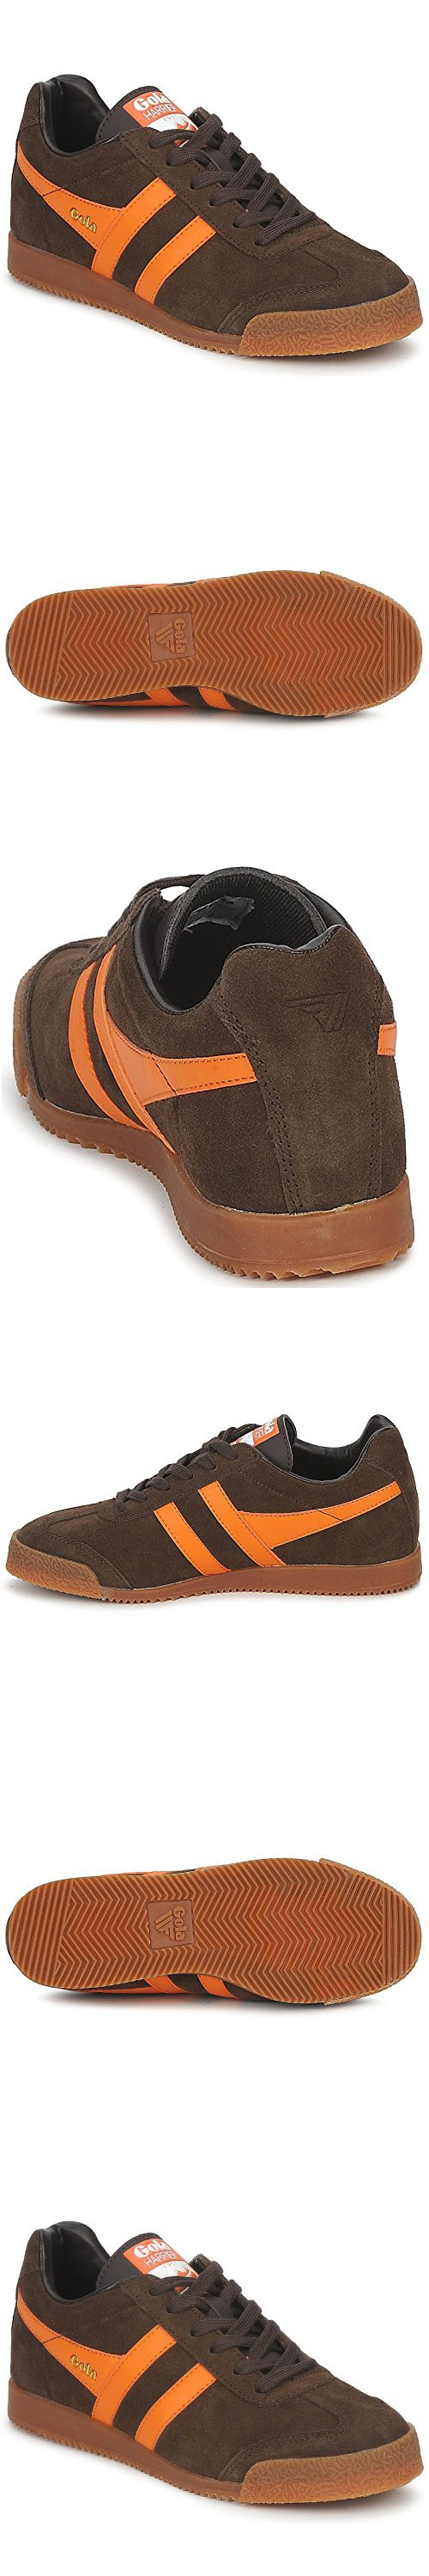 Gola Sport Harrier Premium Suede Brown Womens Trainers Size 6 UK